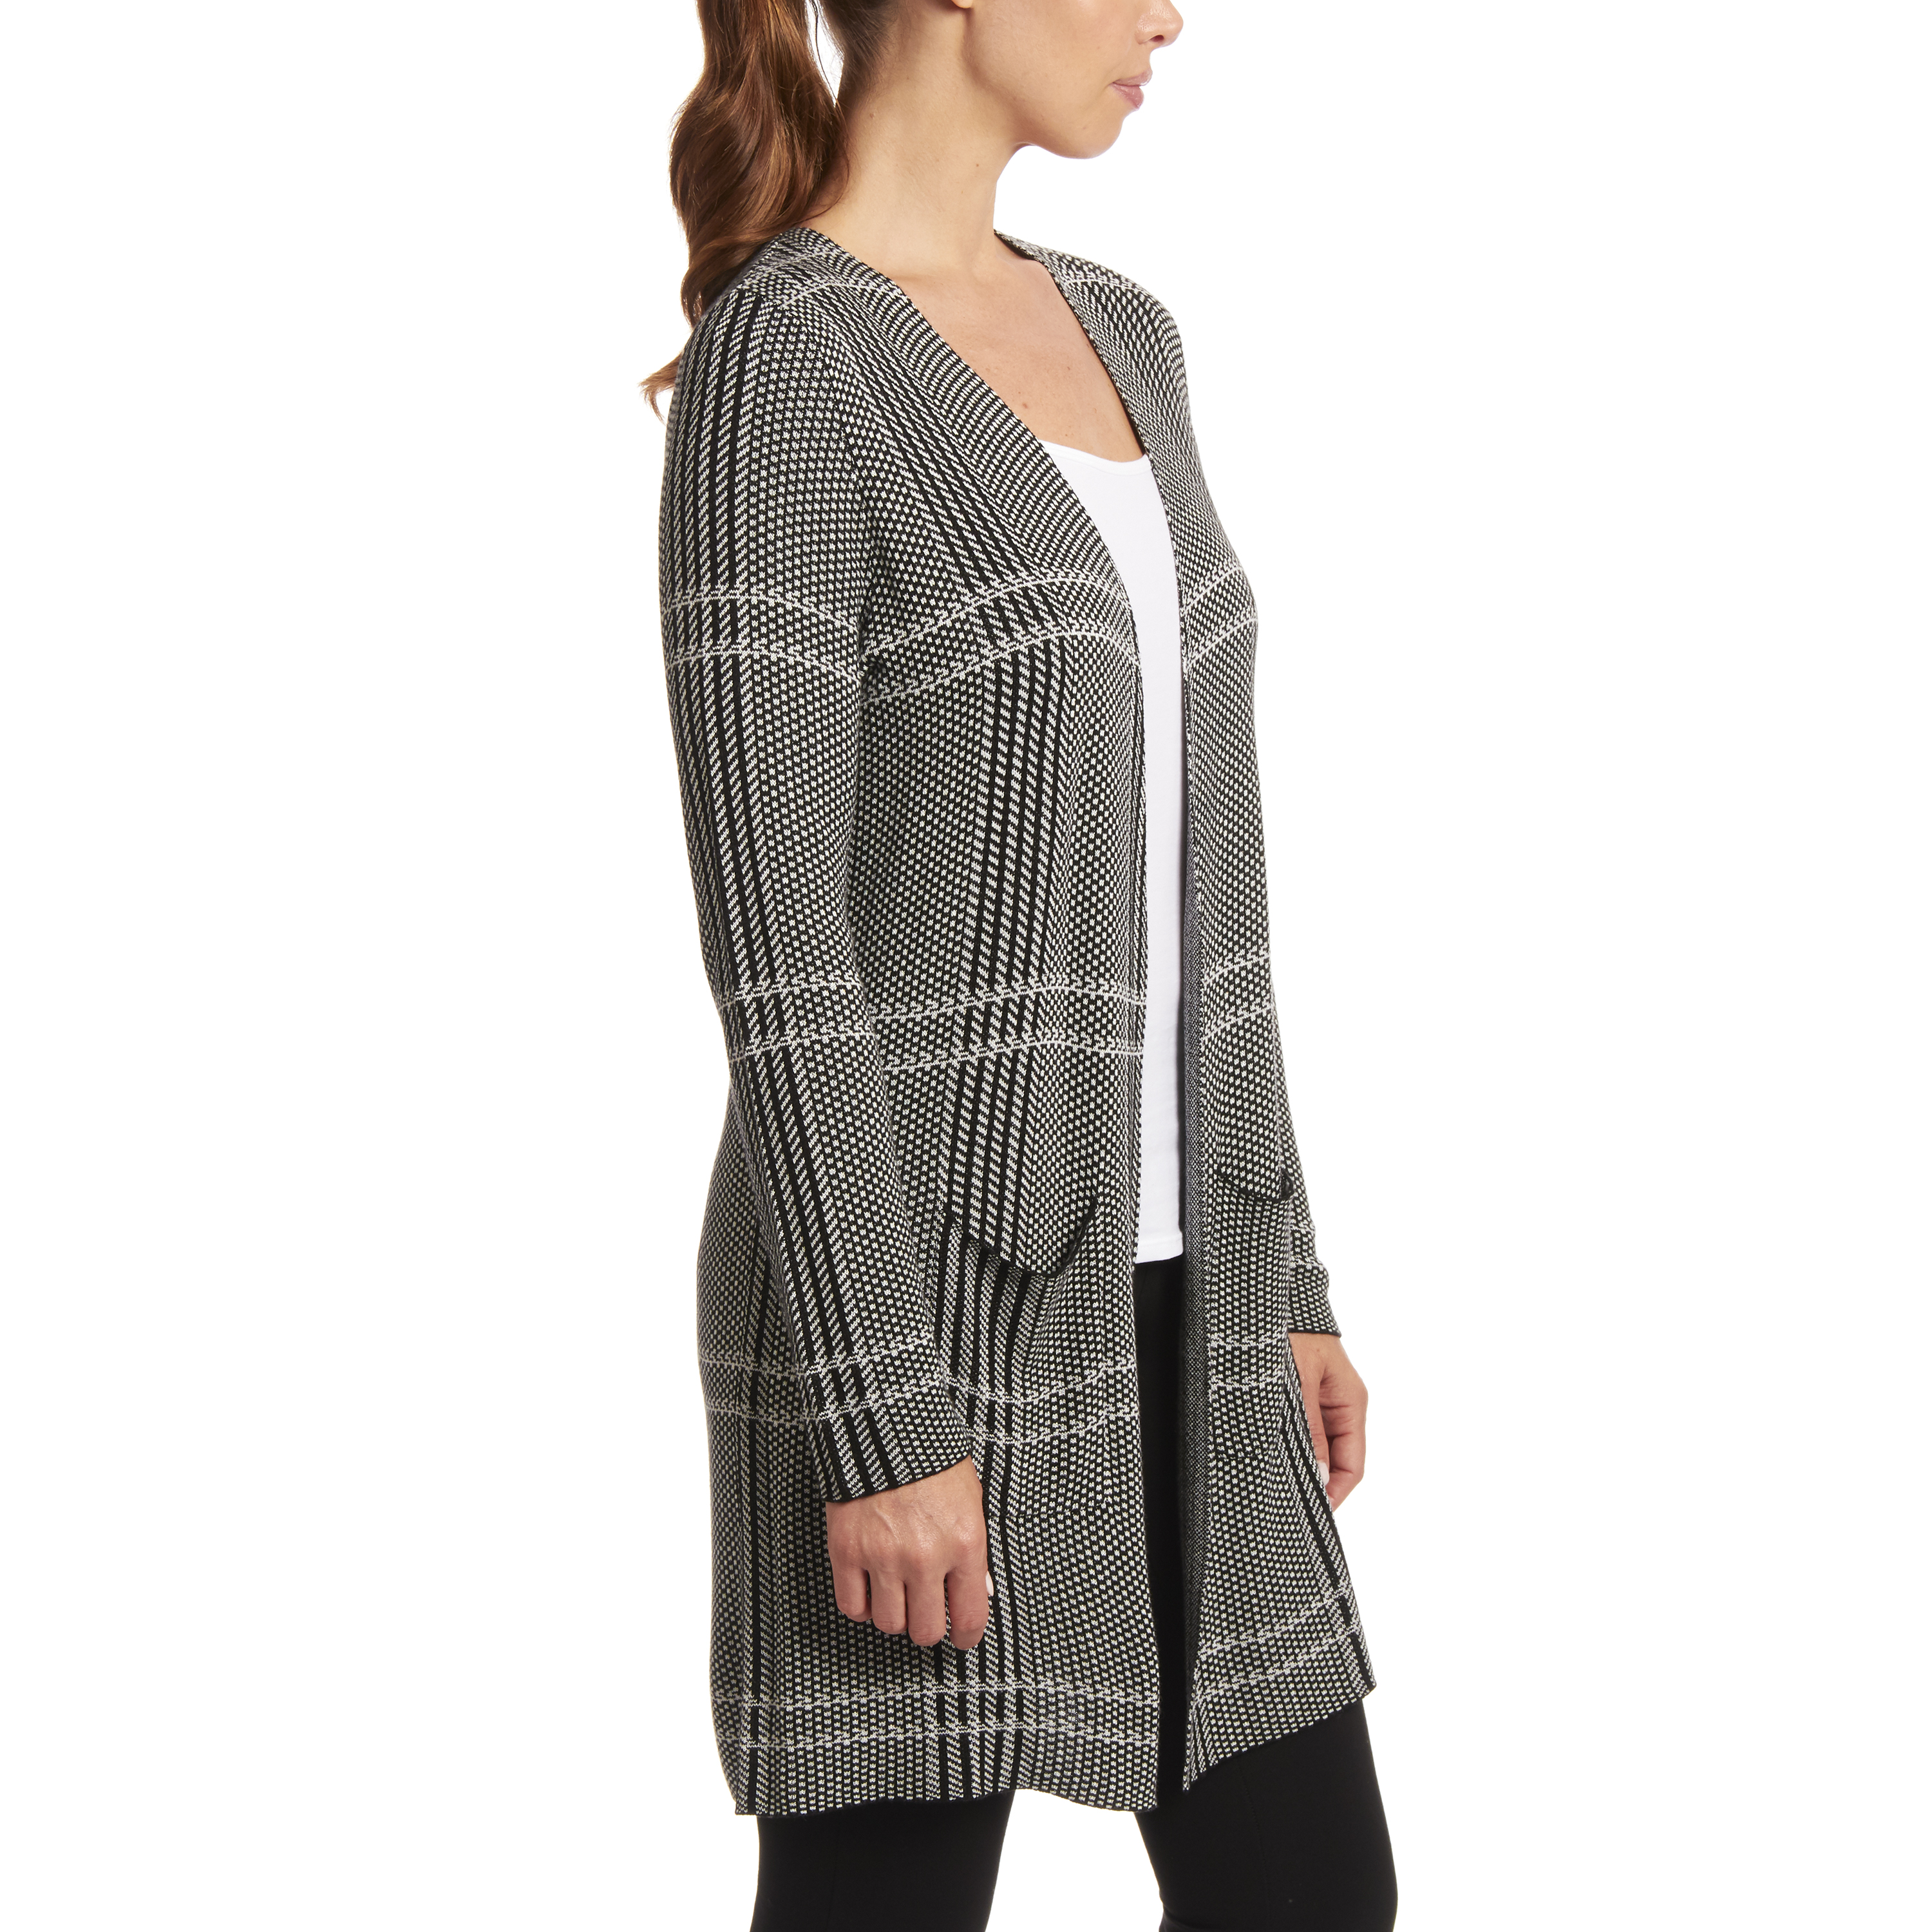 Black and Ivory Plaid Combo Cardigan